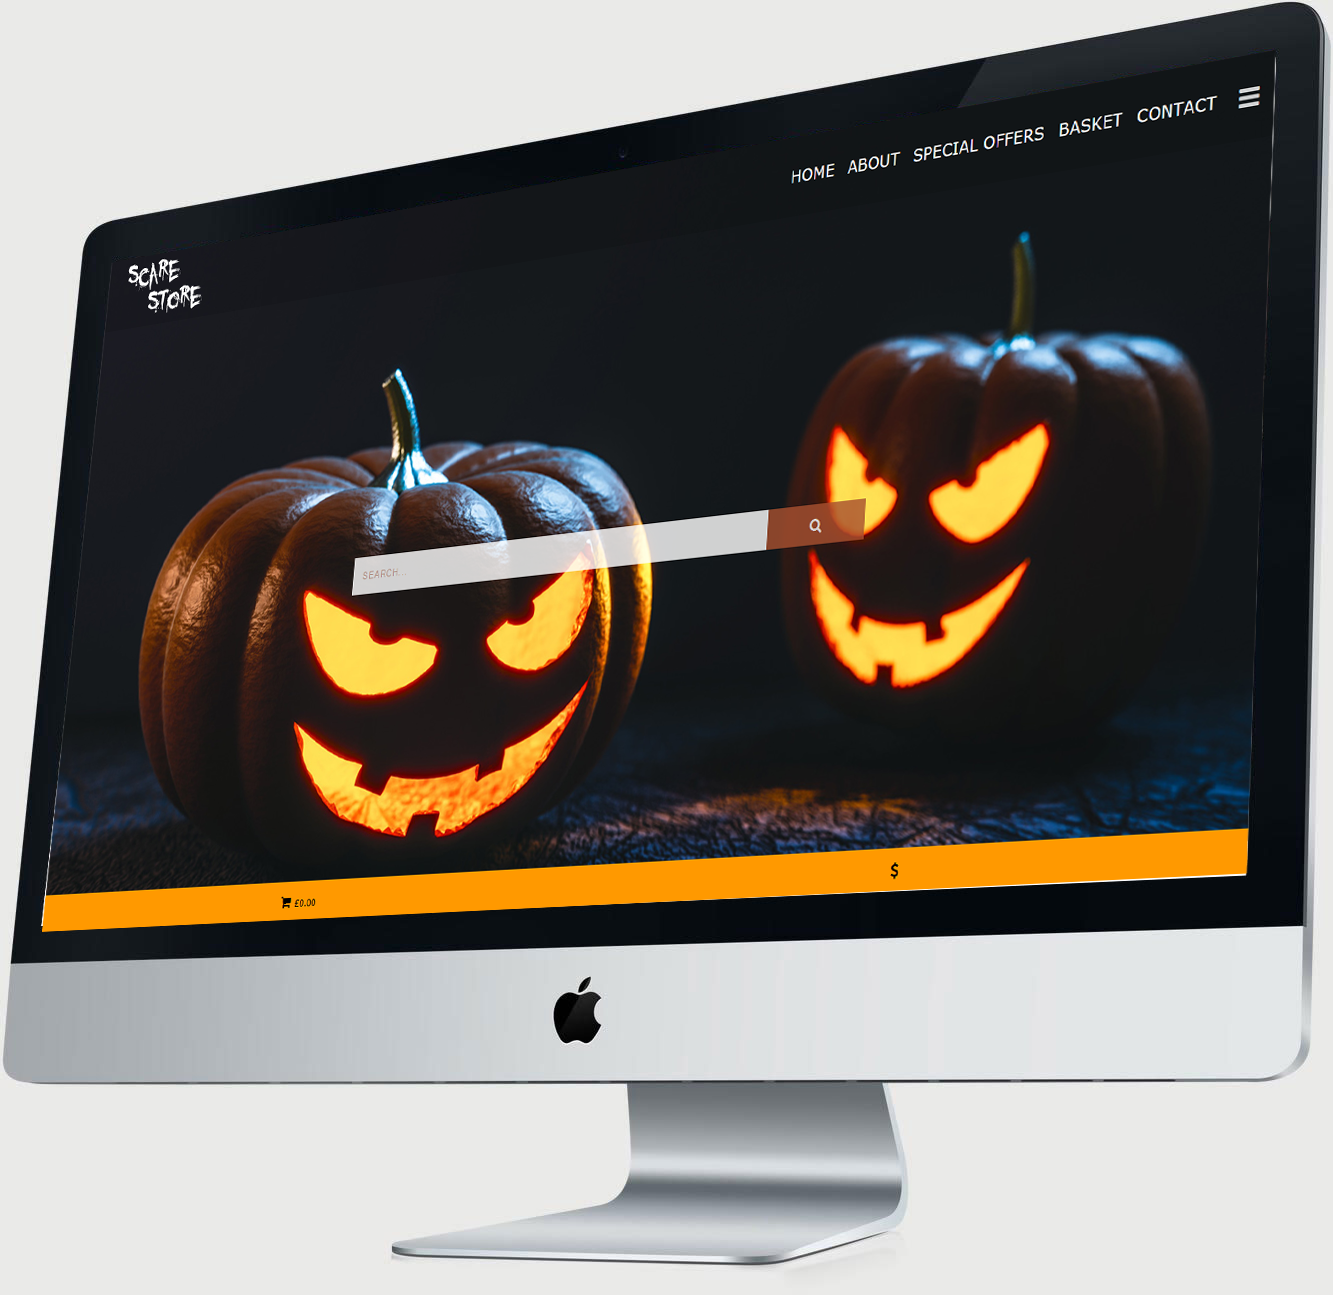 Scare Mac Display